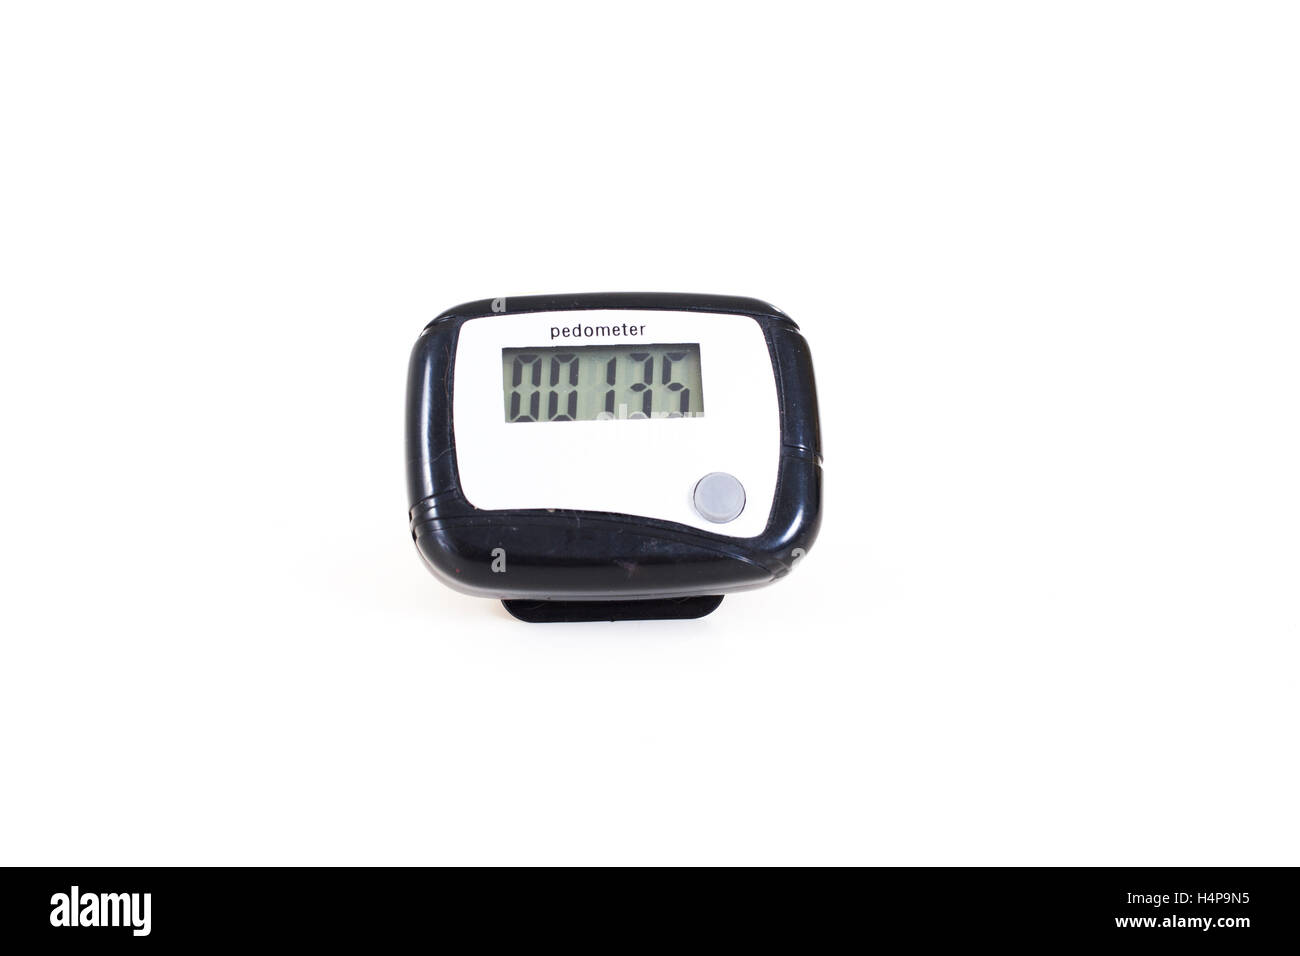 Trained pet photos and white background objects in studio. Pedometer isolated white. Passomater walking number counter - Stock Image